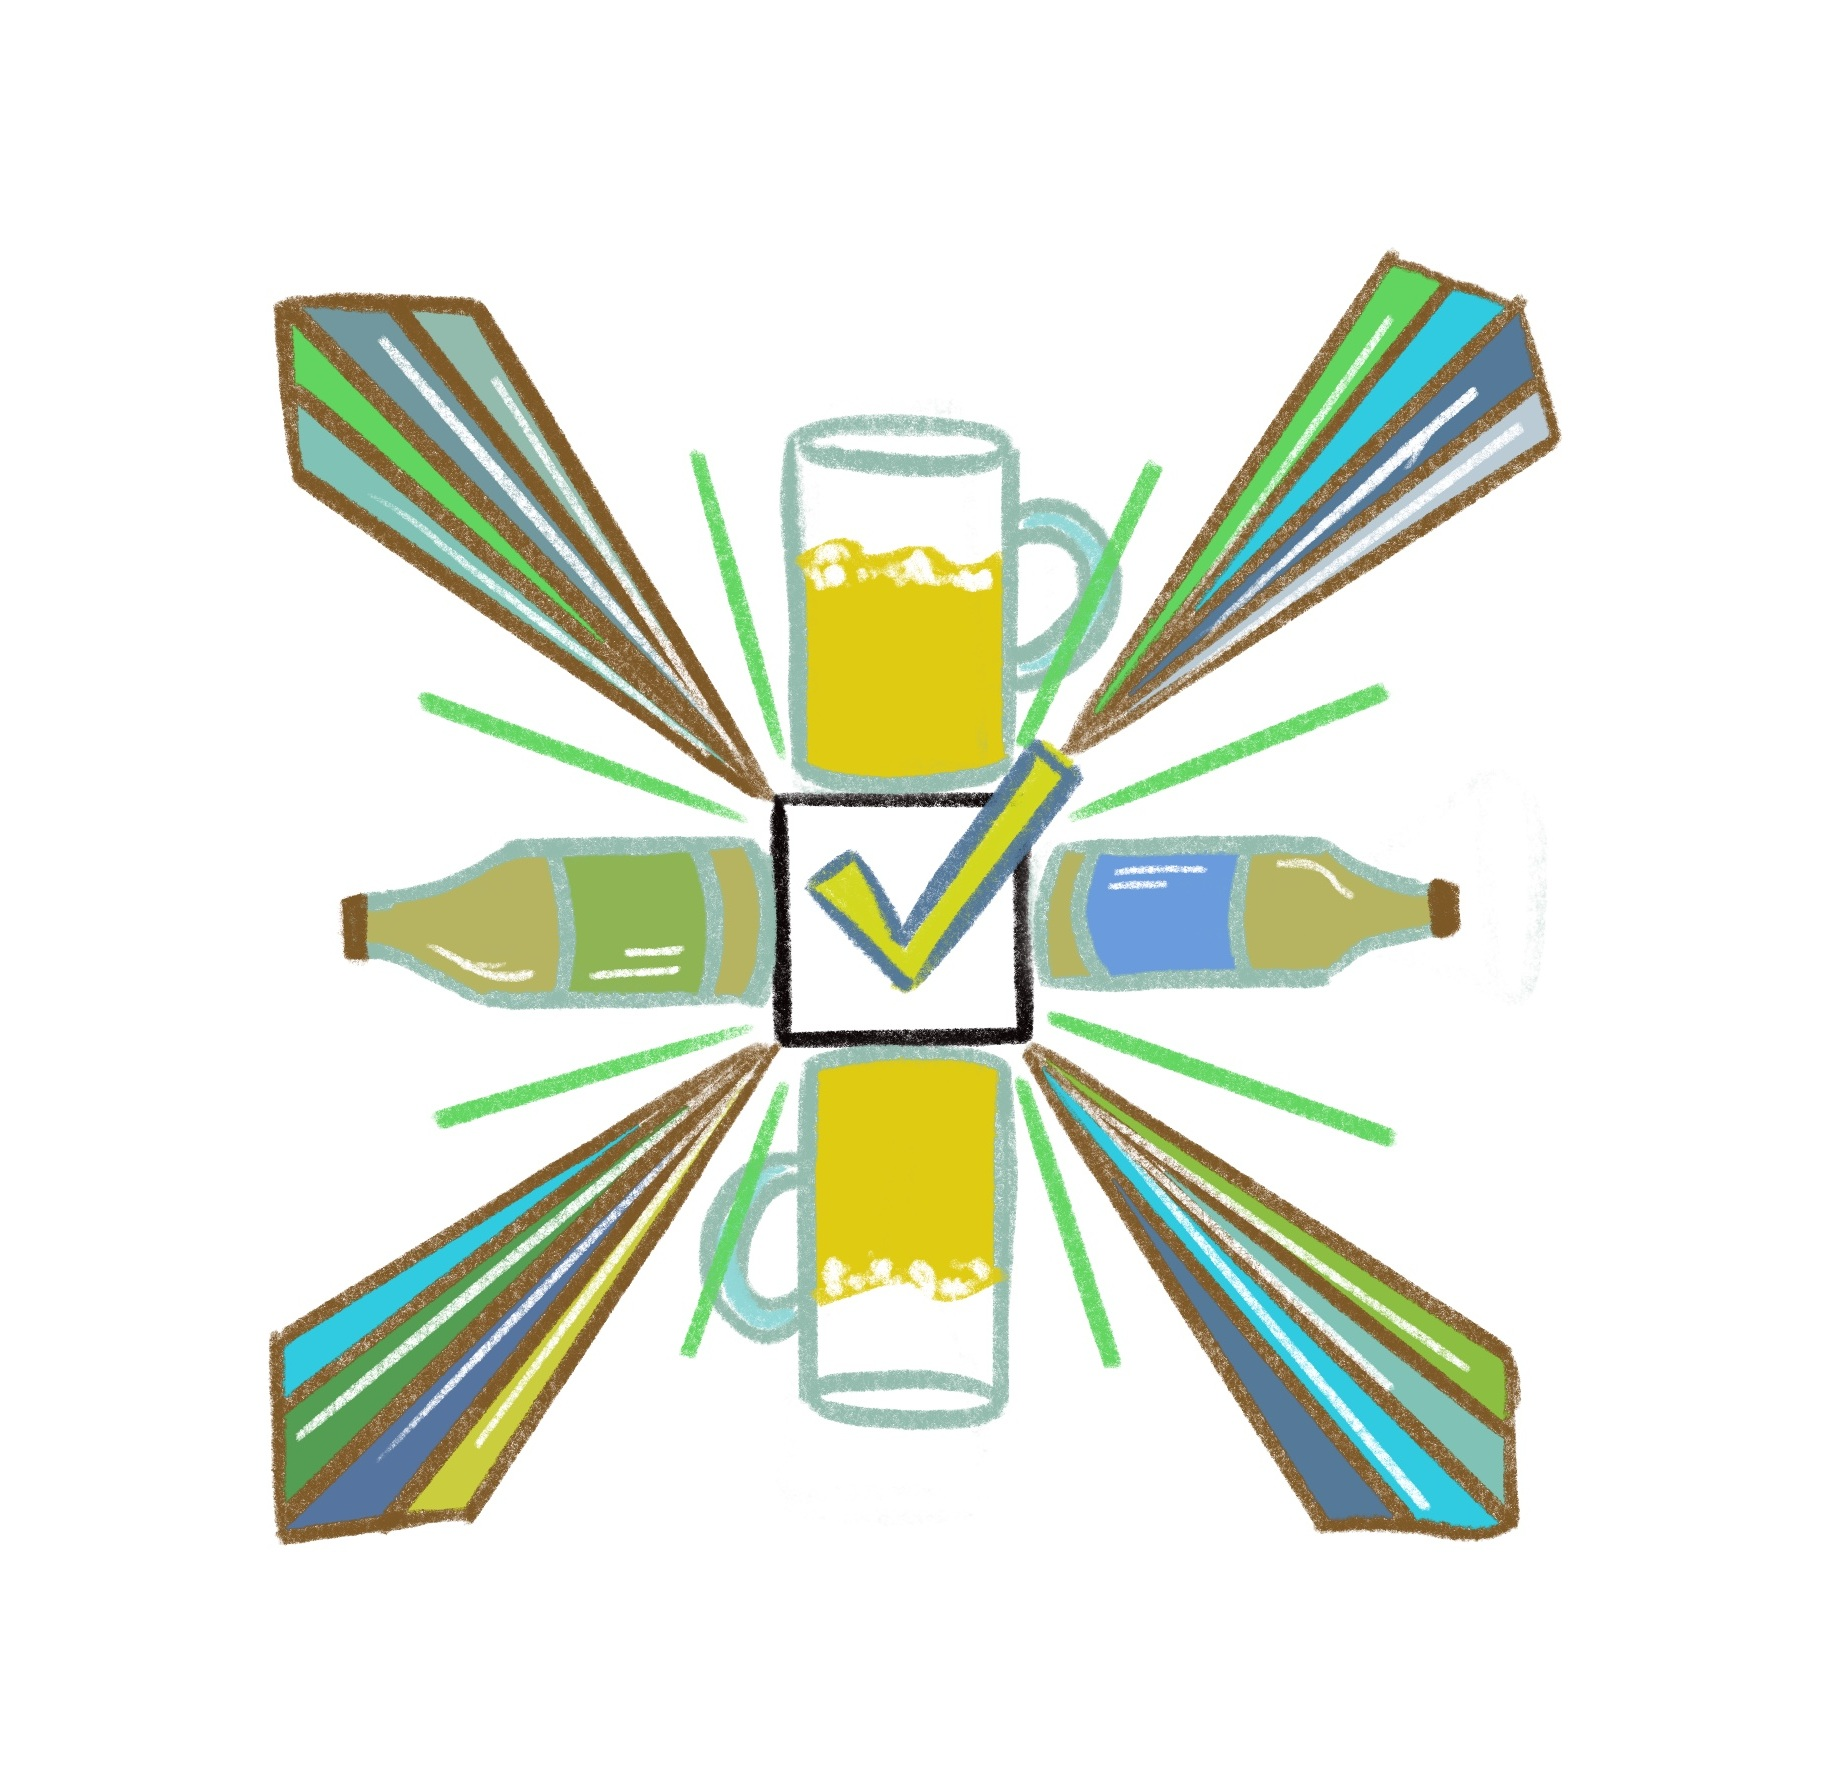 What do you think about the current drinking and voting ages